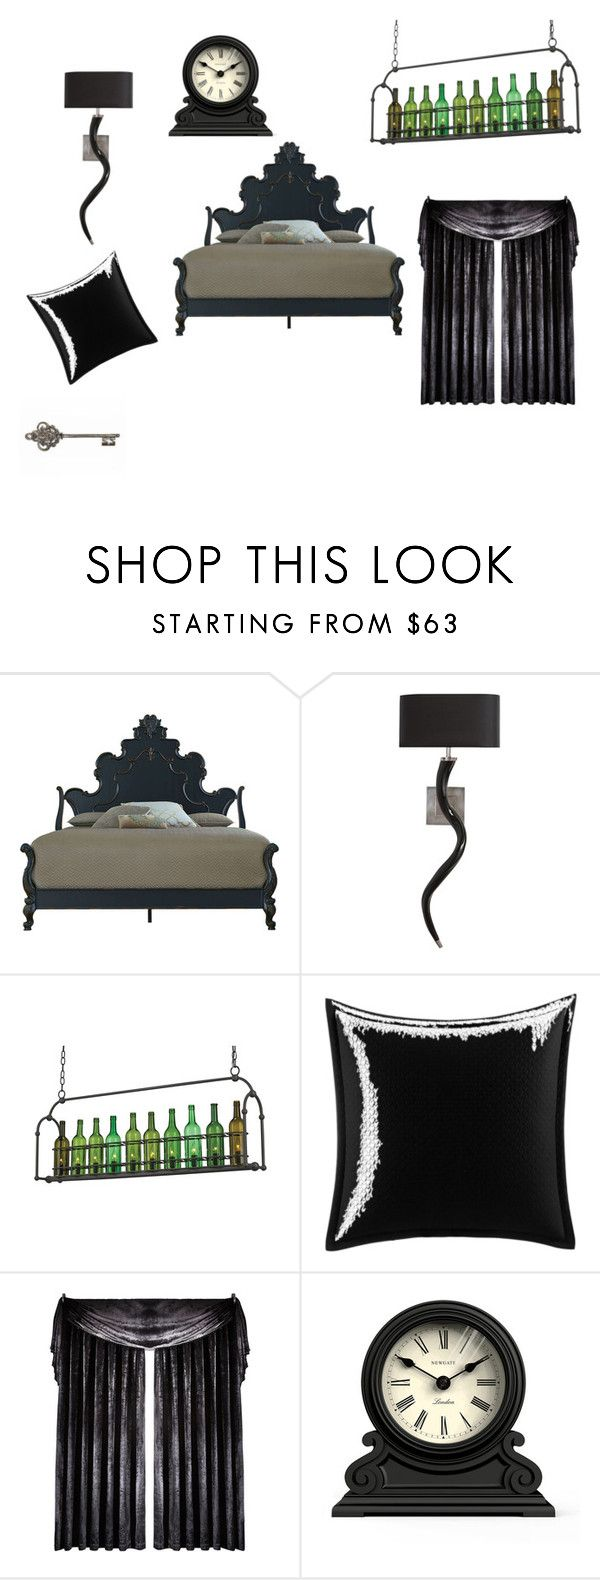 """x"" by jessica-gl on Polyvore featuring interior, interiors, interior design, home, home decor, interior decorating, Currey & Company, Betsey Johnson, Laurence Llewelyn-Bowen and Newgate"